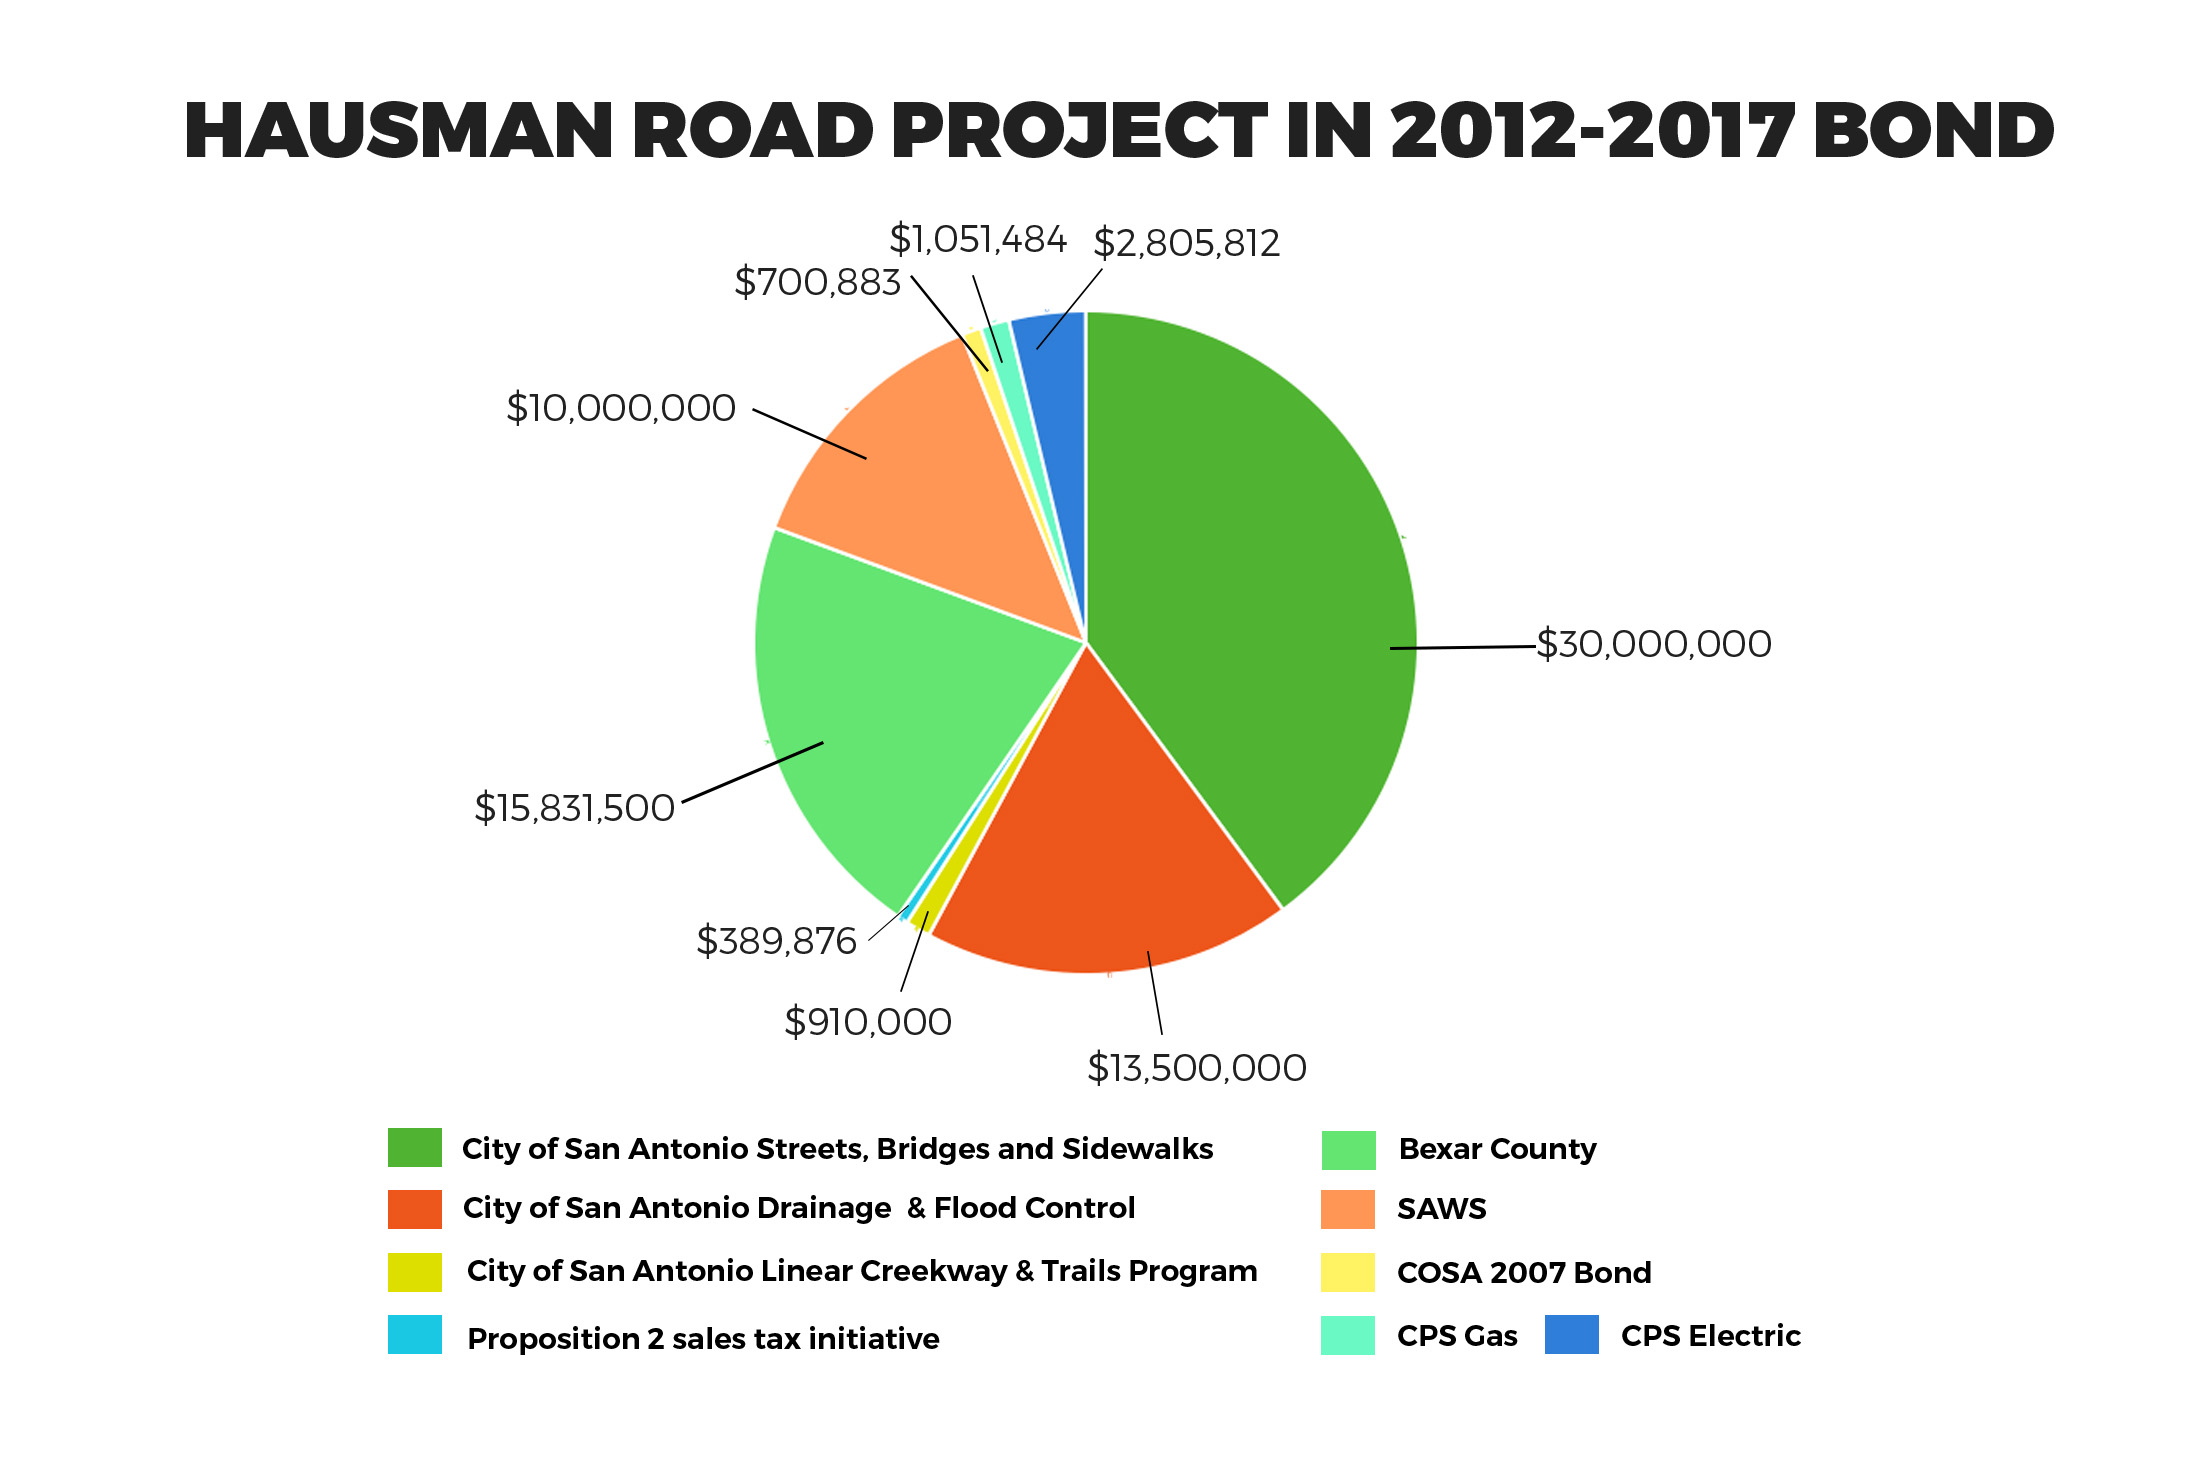 City officials consider Hausman Road a model design/build project coordinated with the Texas Department of Transportation, CPS Energy, SAWS and AT&T. This chart shows the breakdown of the over $75 million costs.